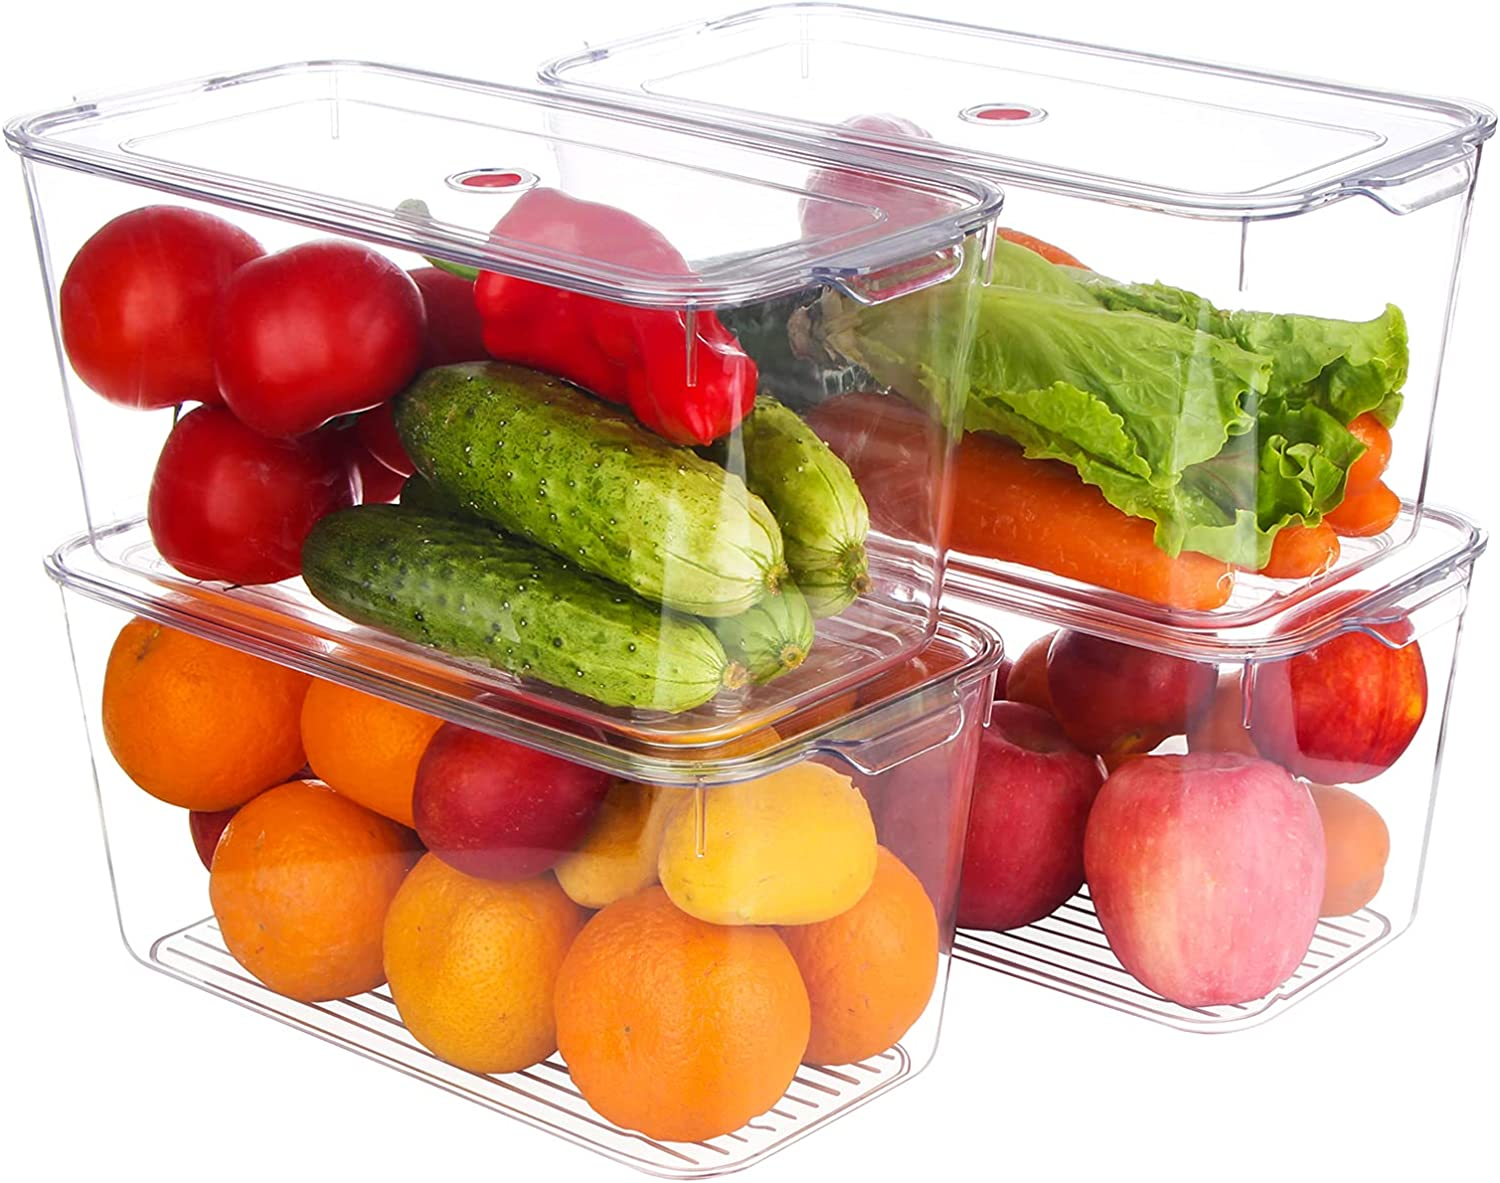 Plastic Stackable Kitchen Pantry Cabinet, Refrigerator, Freezer Food Storage Box with Handle and Lids - Organization for Fruit, Vegetables, Snacks, Pasta. BPA Free, Large 12